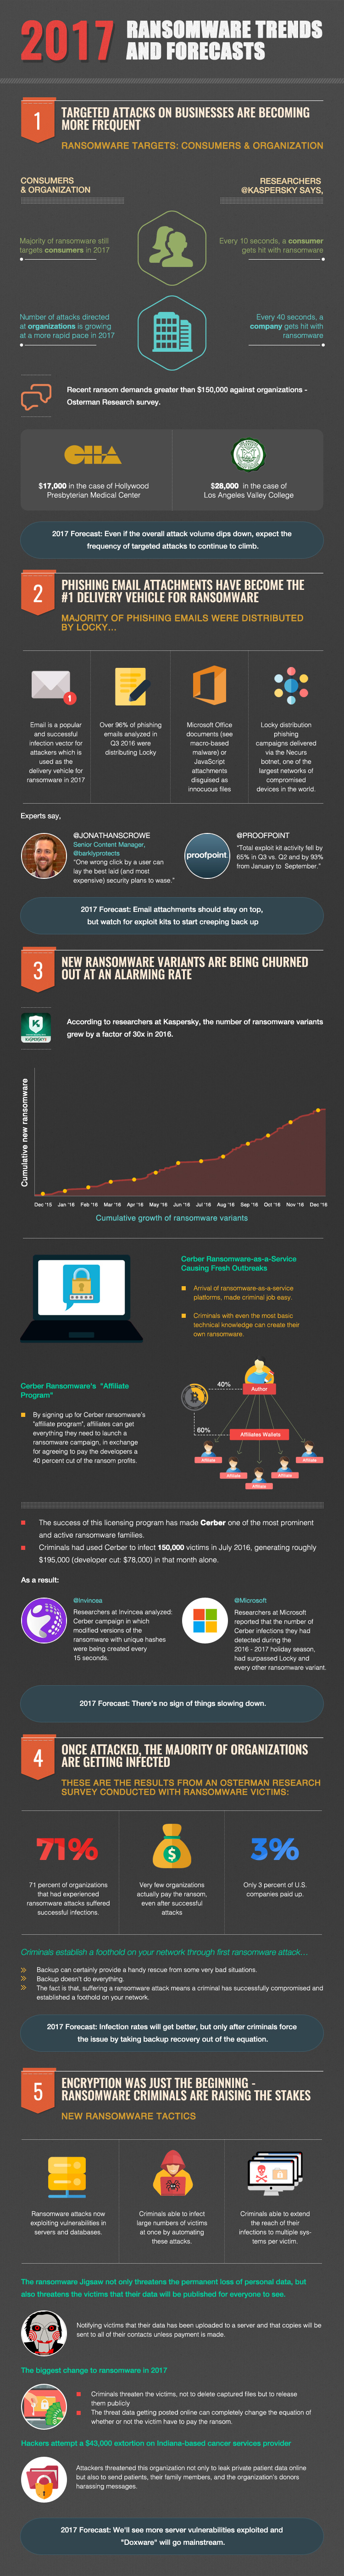 Ransomware Trends and Forecasts